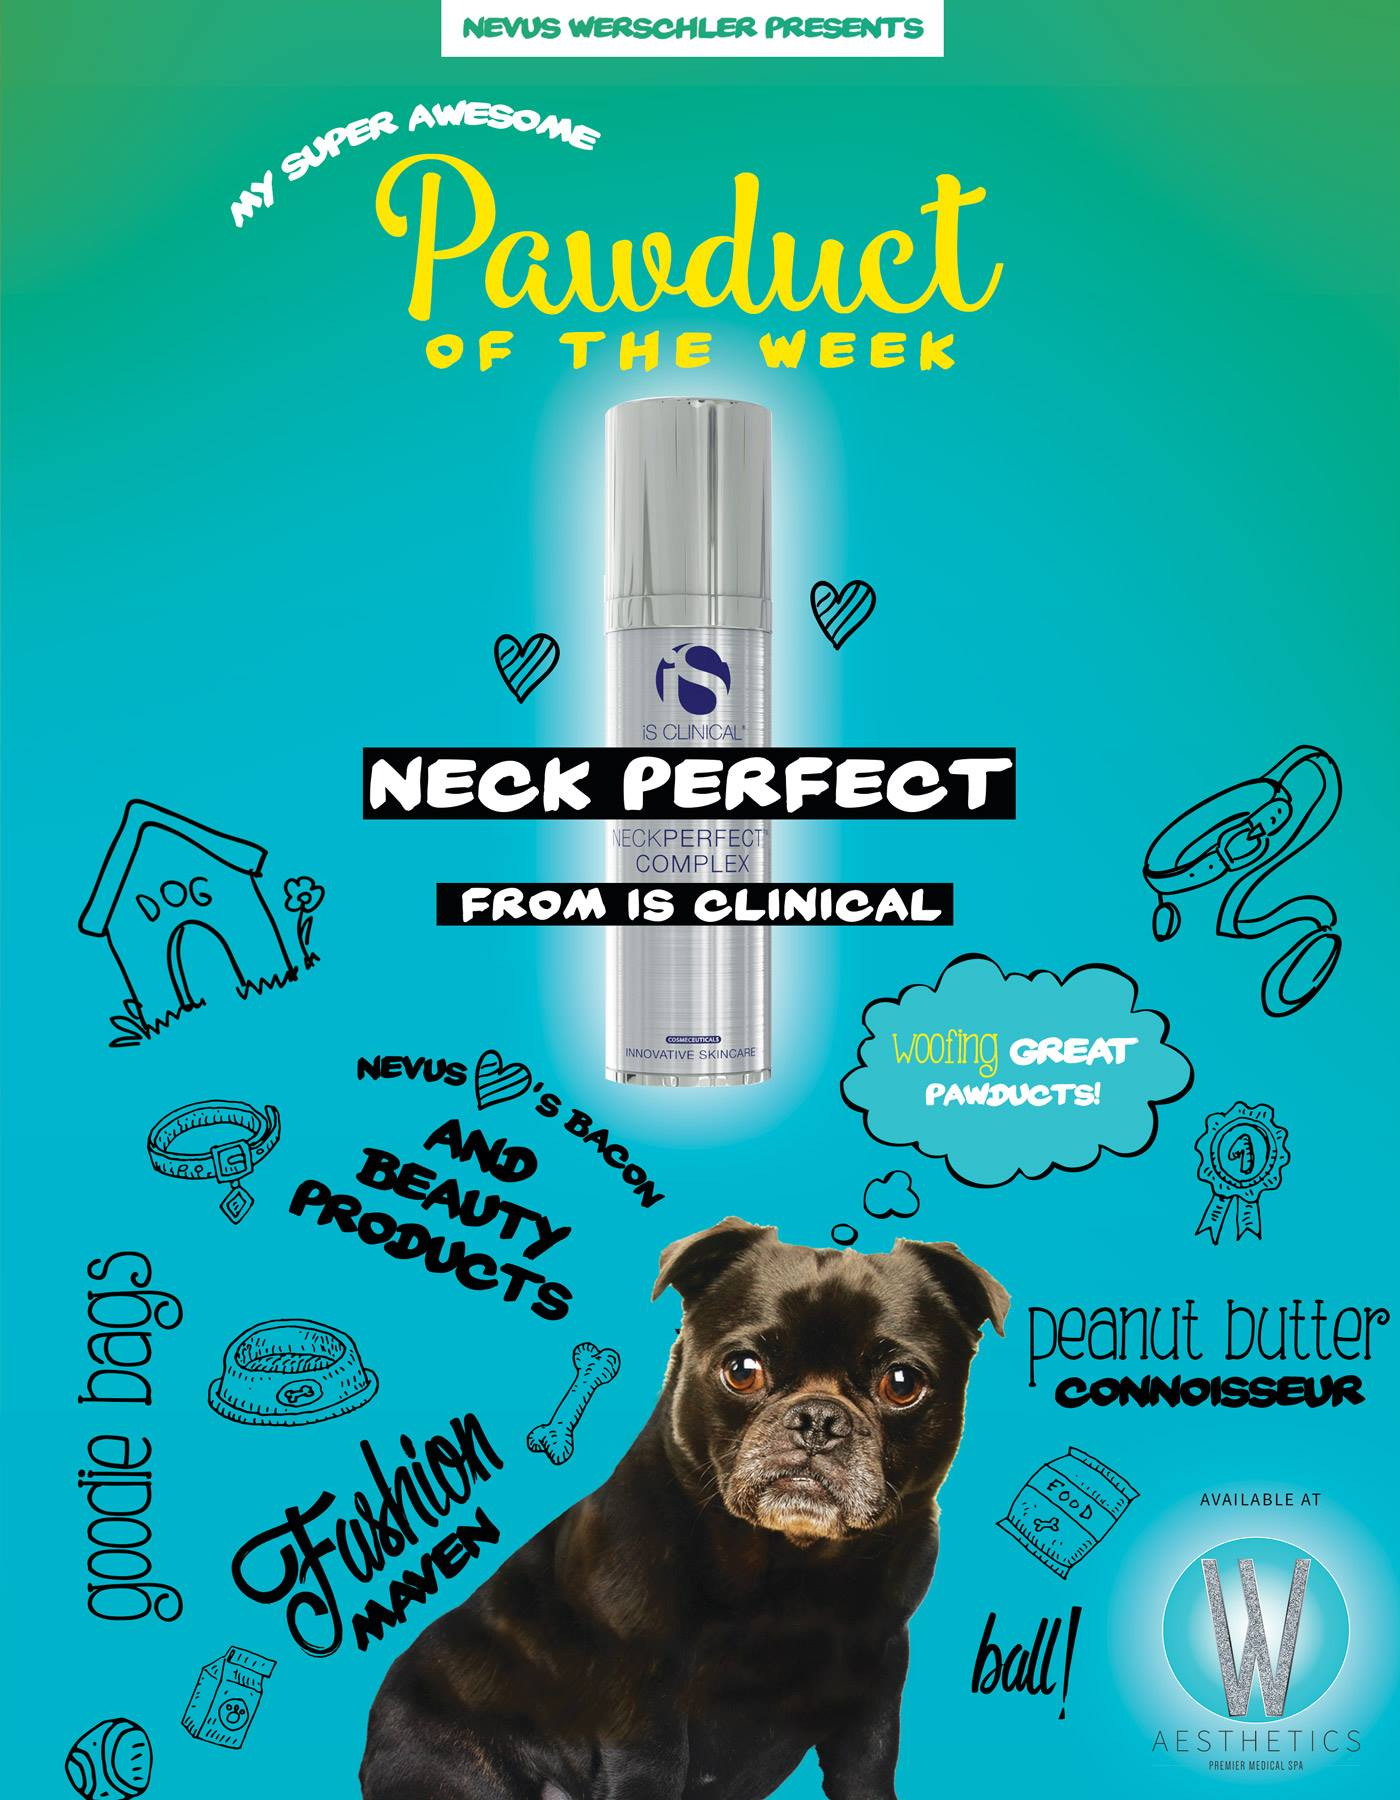 iS Clinical Neck Perfect Complex is one of the many innovative skincare products in-stock at Werschler Aesthetics Premier Medical Spa in Spokane, WA.